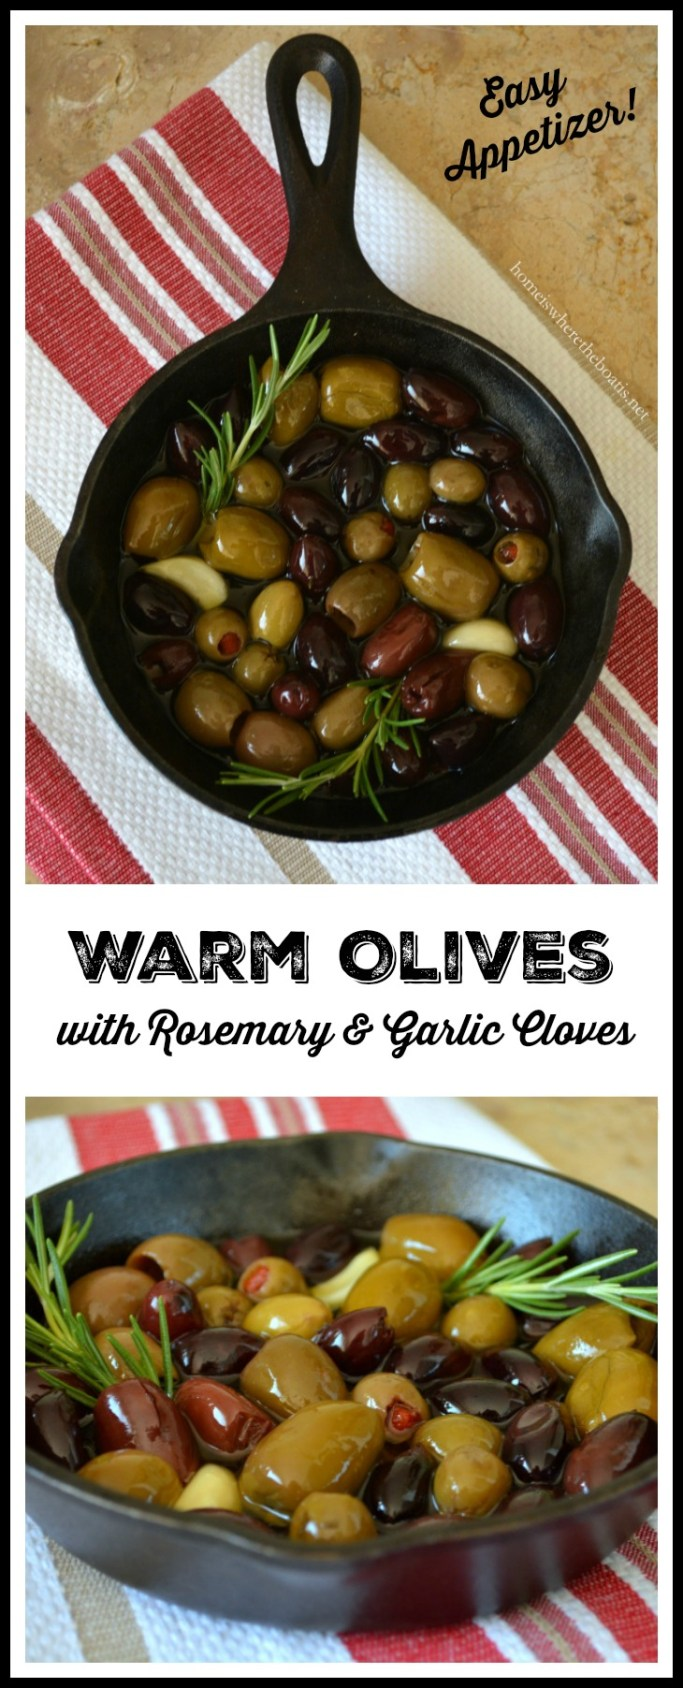 Warm Olives with Rosemary & Garlic Cloves